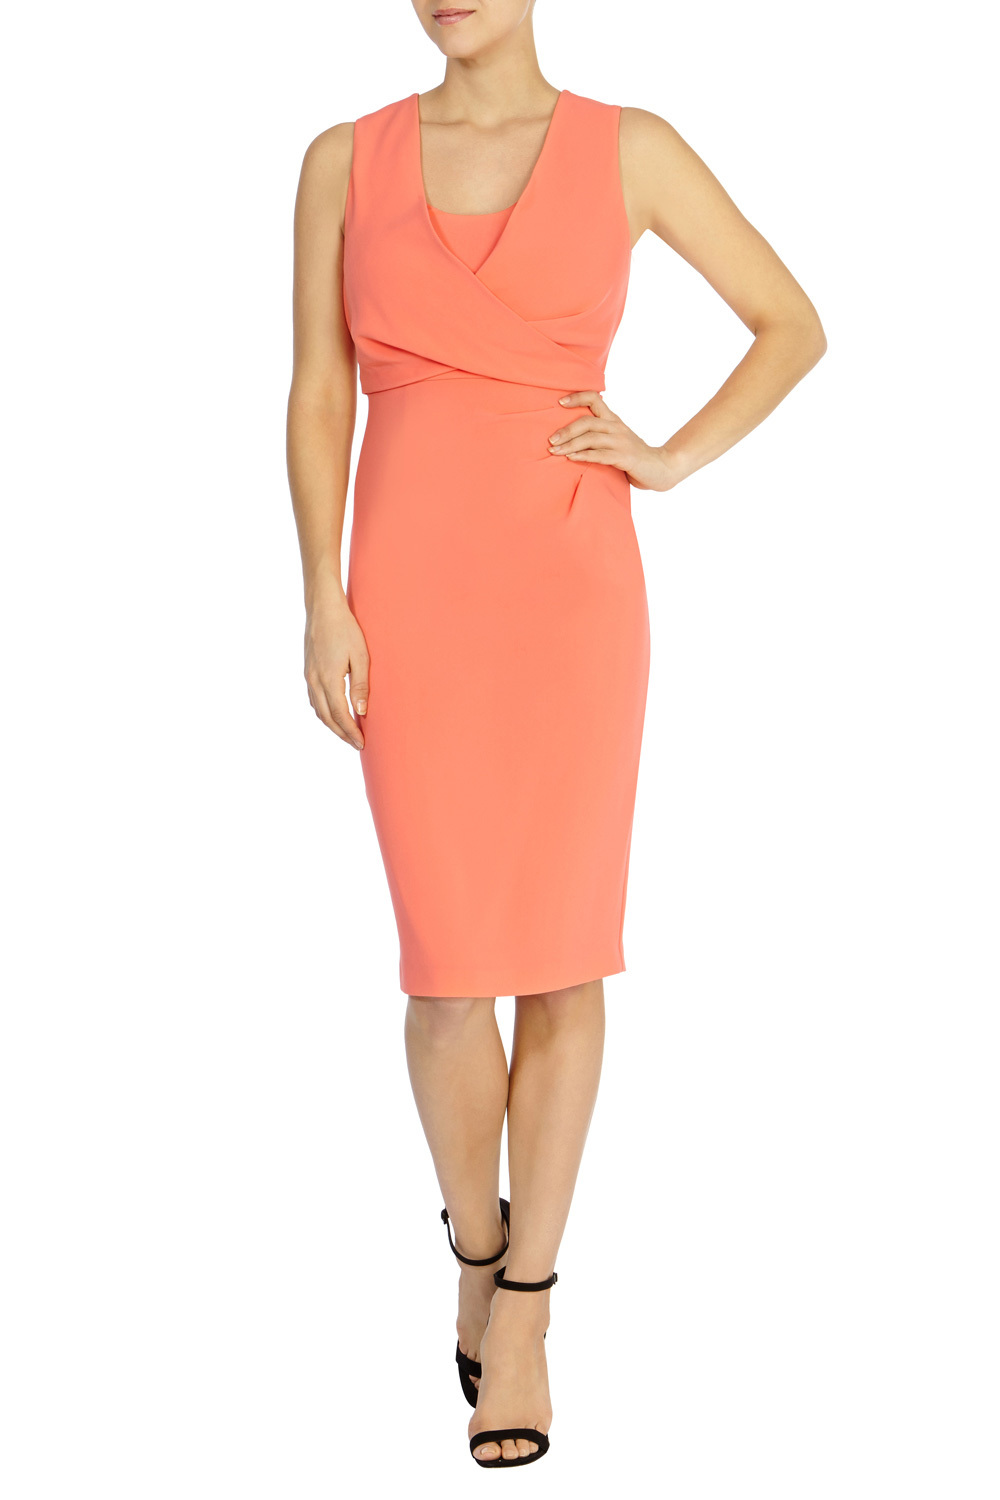 Claudette Crepe Dress - style: shift; neckline: v-neck; fit: tailored/fitted; pattern: plain; sleeve style: sleeveless; waist detail: twist front waist detail/nipped in at waist on one side/soft pleats/draping/ruching/gathering waist detail; predominant colour: bright orange; length: on the knee; occasions: occasion; sleeve length: sleeveless; pattern type: fabric; texture group: other - light to midweight; fibres: viscose/rayon - mix; season: s/s 2016; wardrobe: event